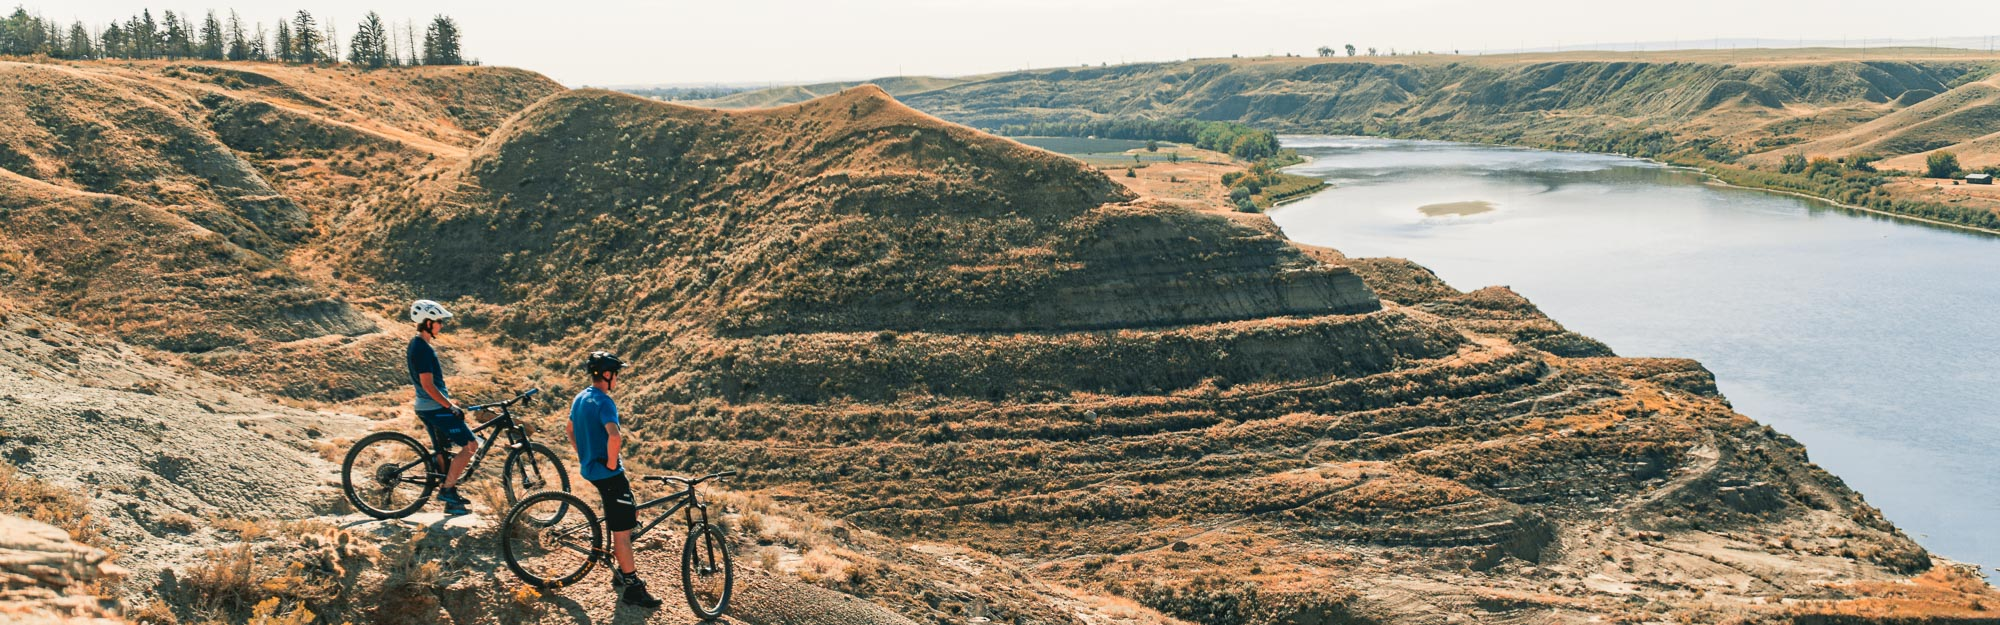 My Perfect Day in Medicine Hat Mountain Biking